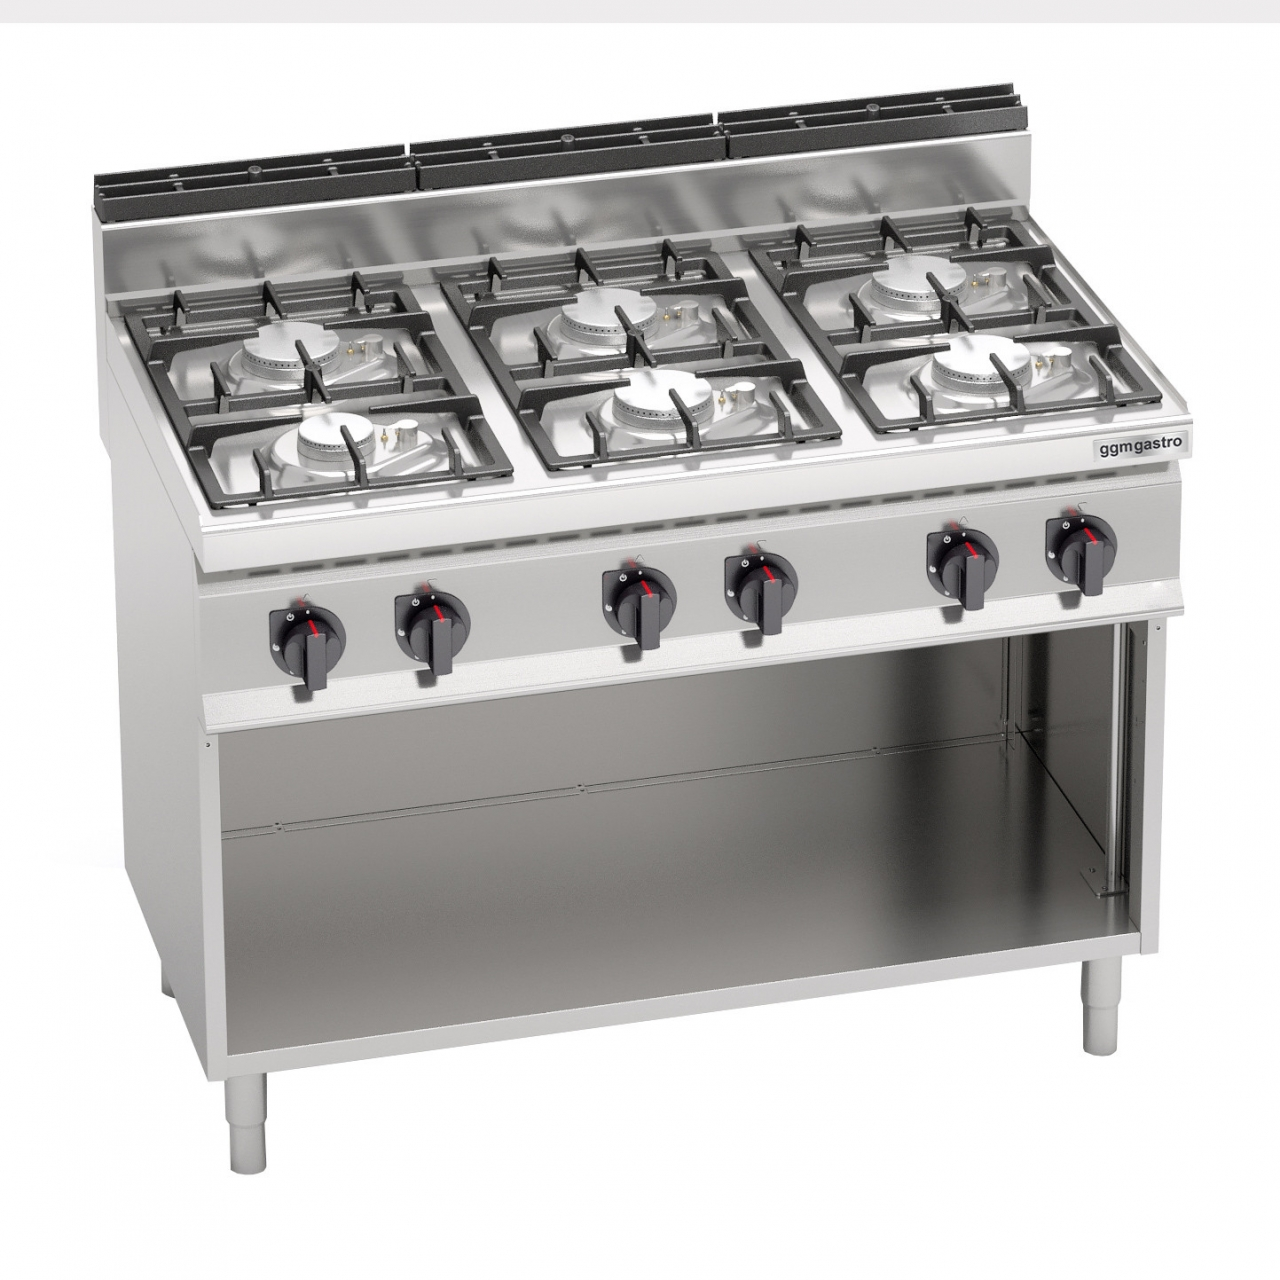 Gas stove 6 burners 33.5 kW electronic ignition